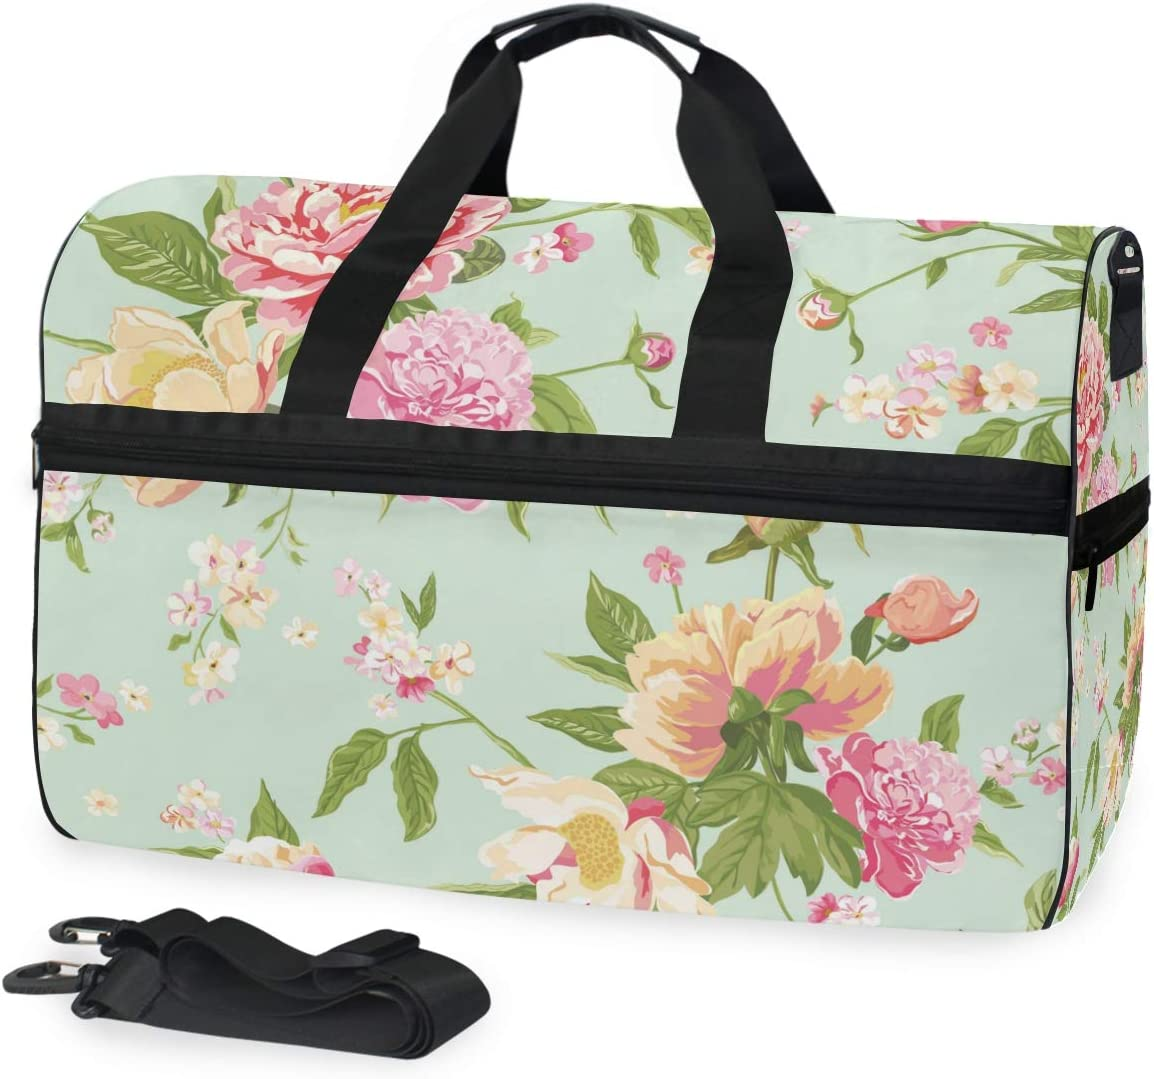 Travel Duffels Pink Rose Duffle Bag Luggage Sports Gym for Women /& Men